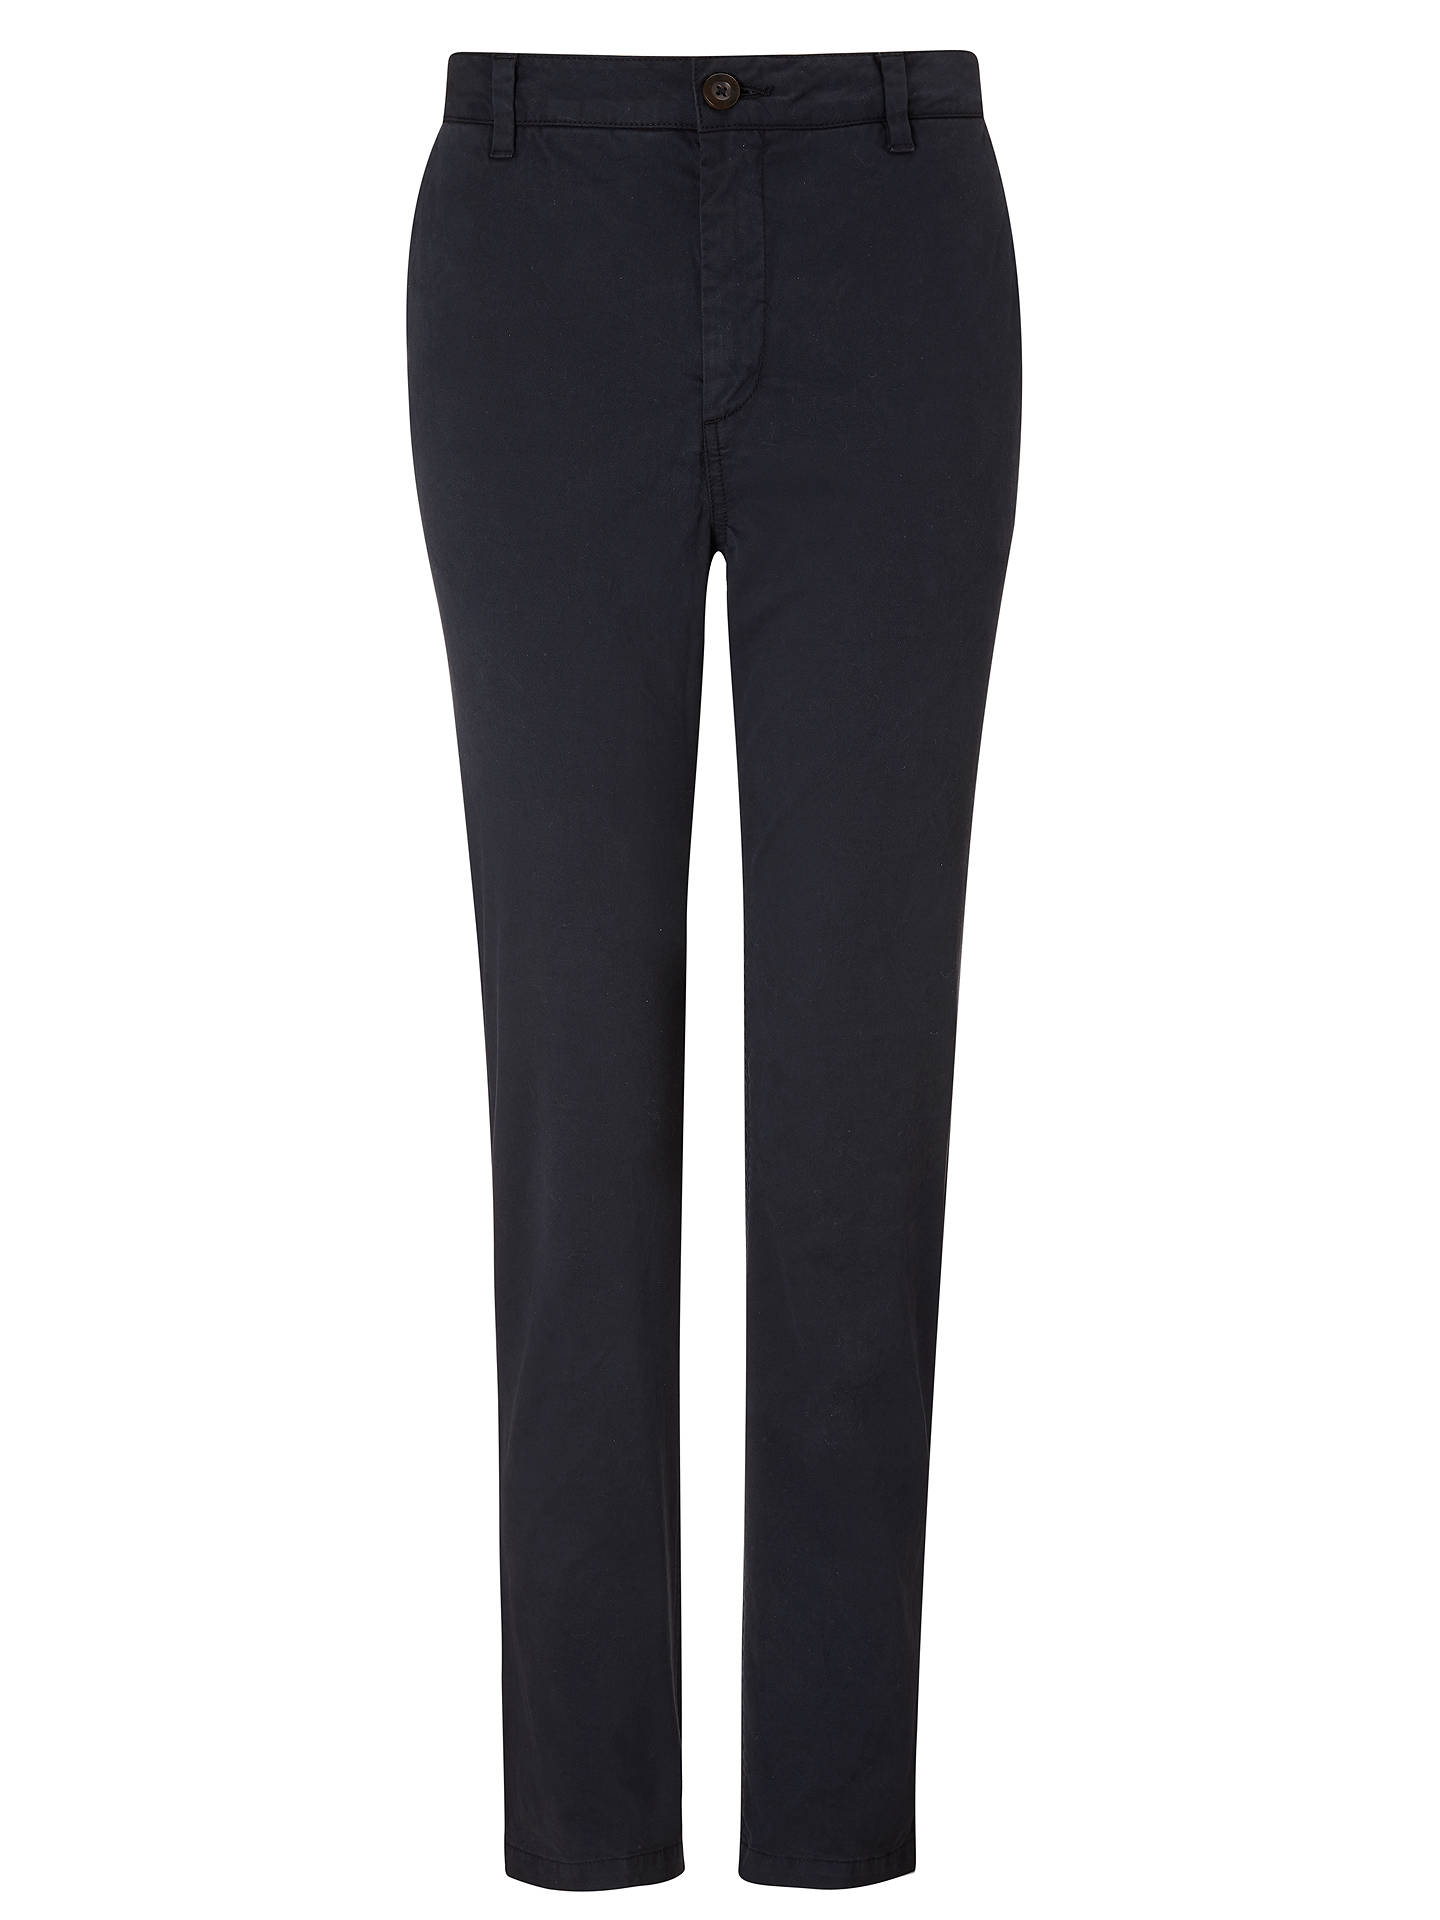 BuyJohn Lewis & Partners Washed Girlfriend Chinos, Black, 8 Online at johnlewis.com